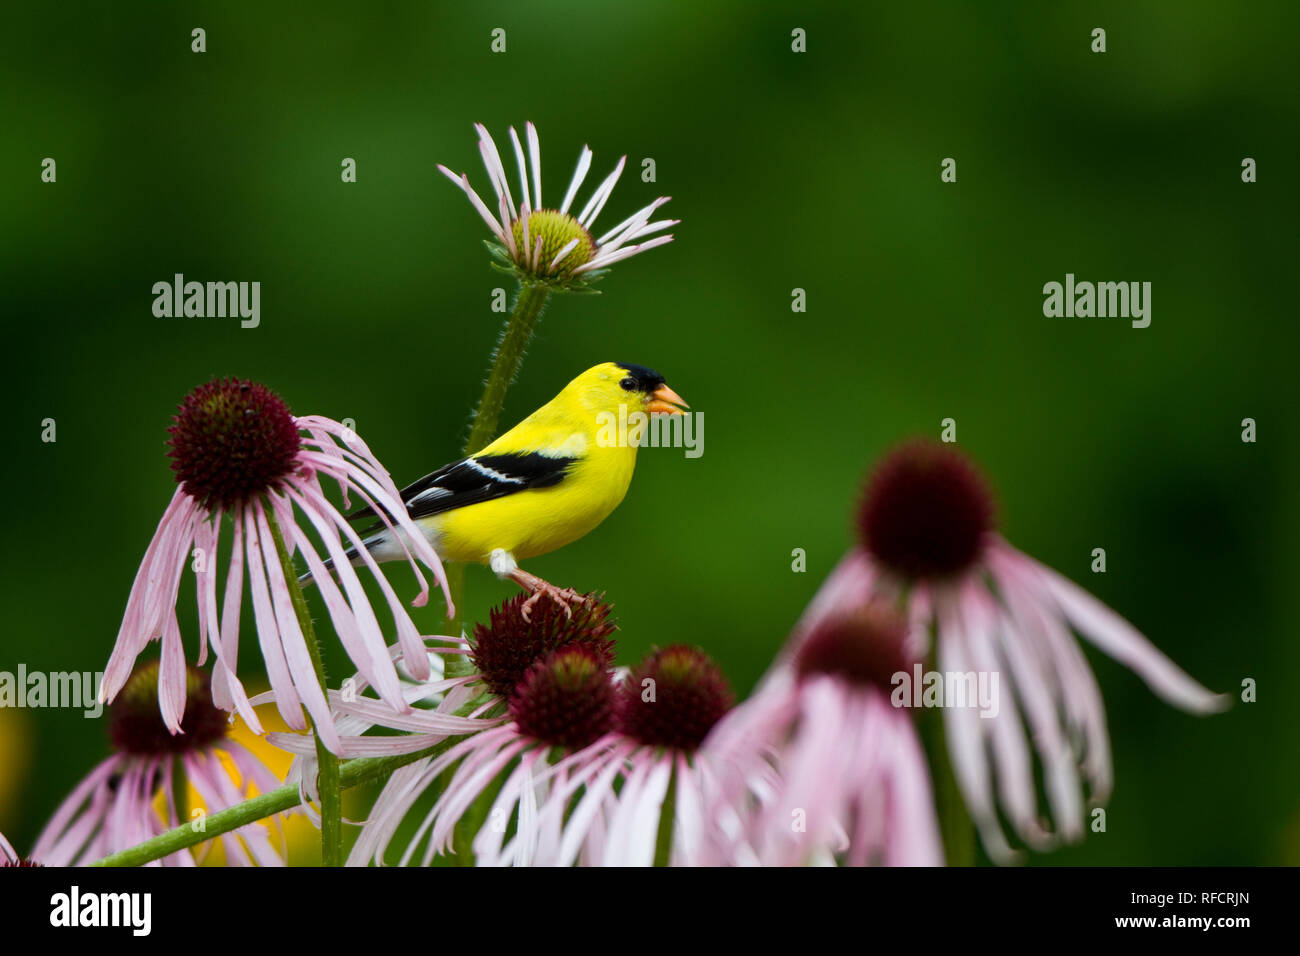 01640-16020 American Goldfinch (Carduelis tristis) male on Pale Purple Coneflower (Echinacea pallida) in flower garden, Marion Co, IL - Stock Image